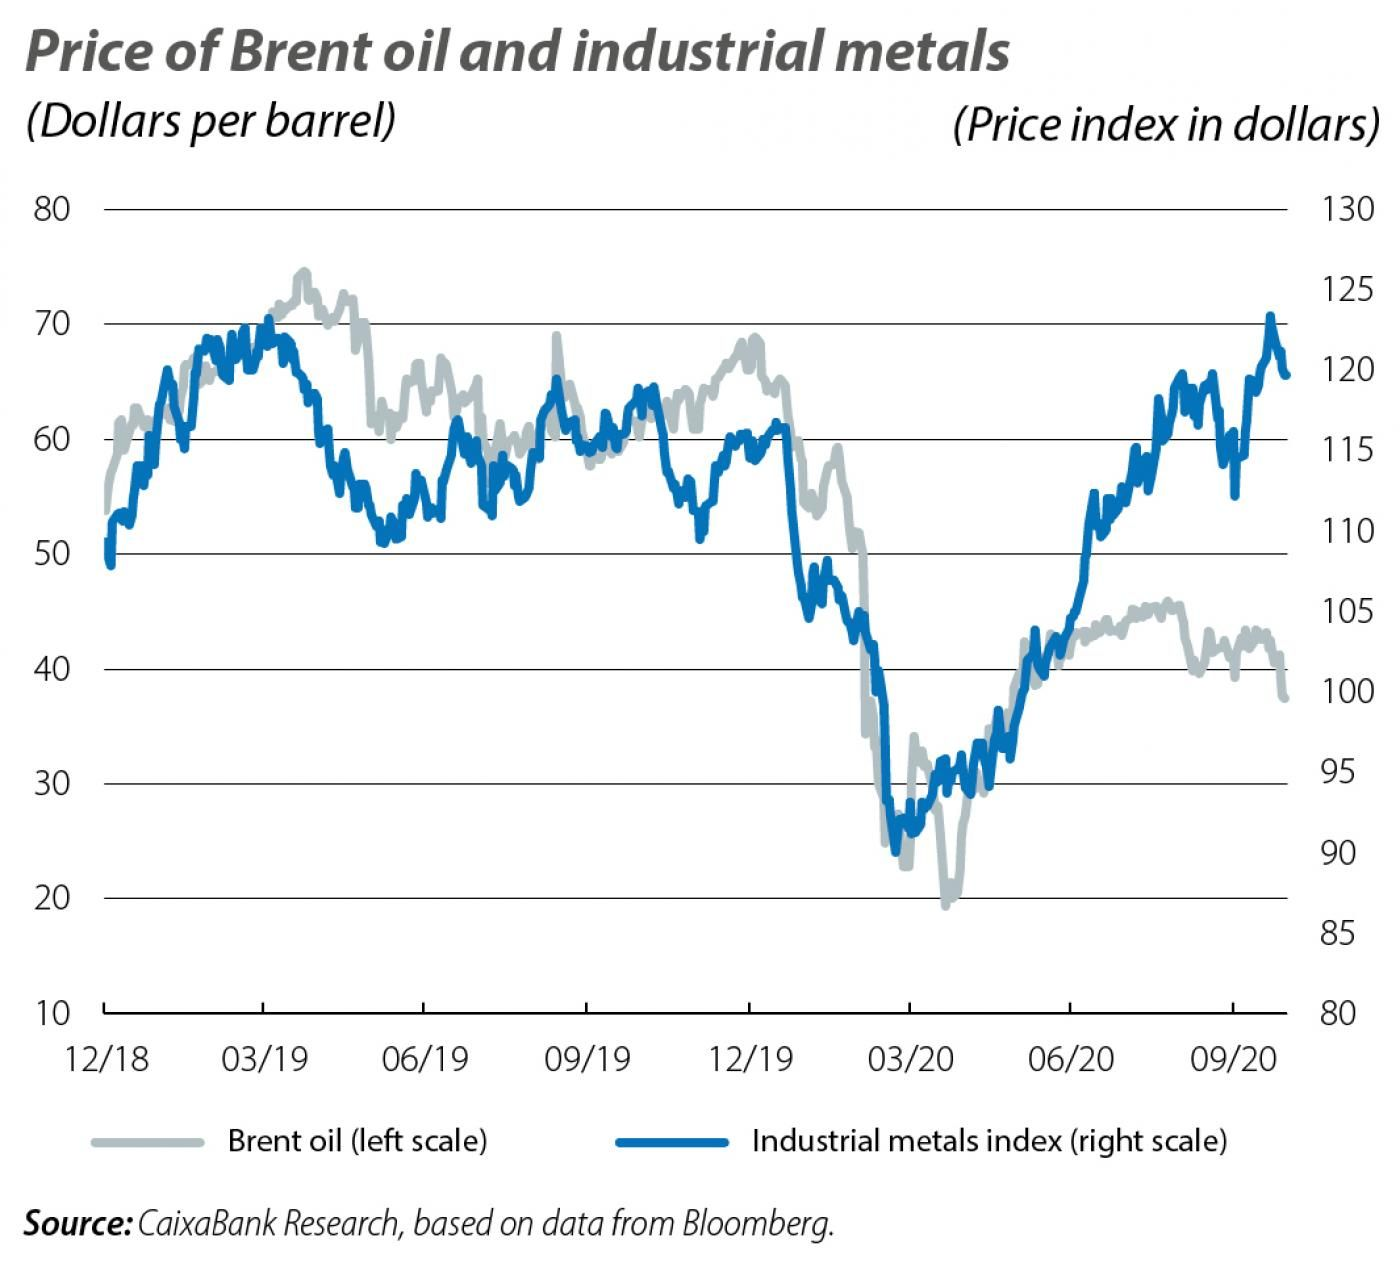 Price of Brent oil and industrial metals